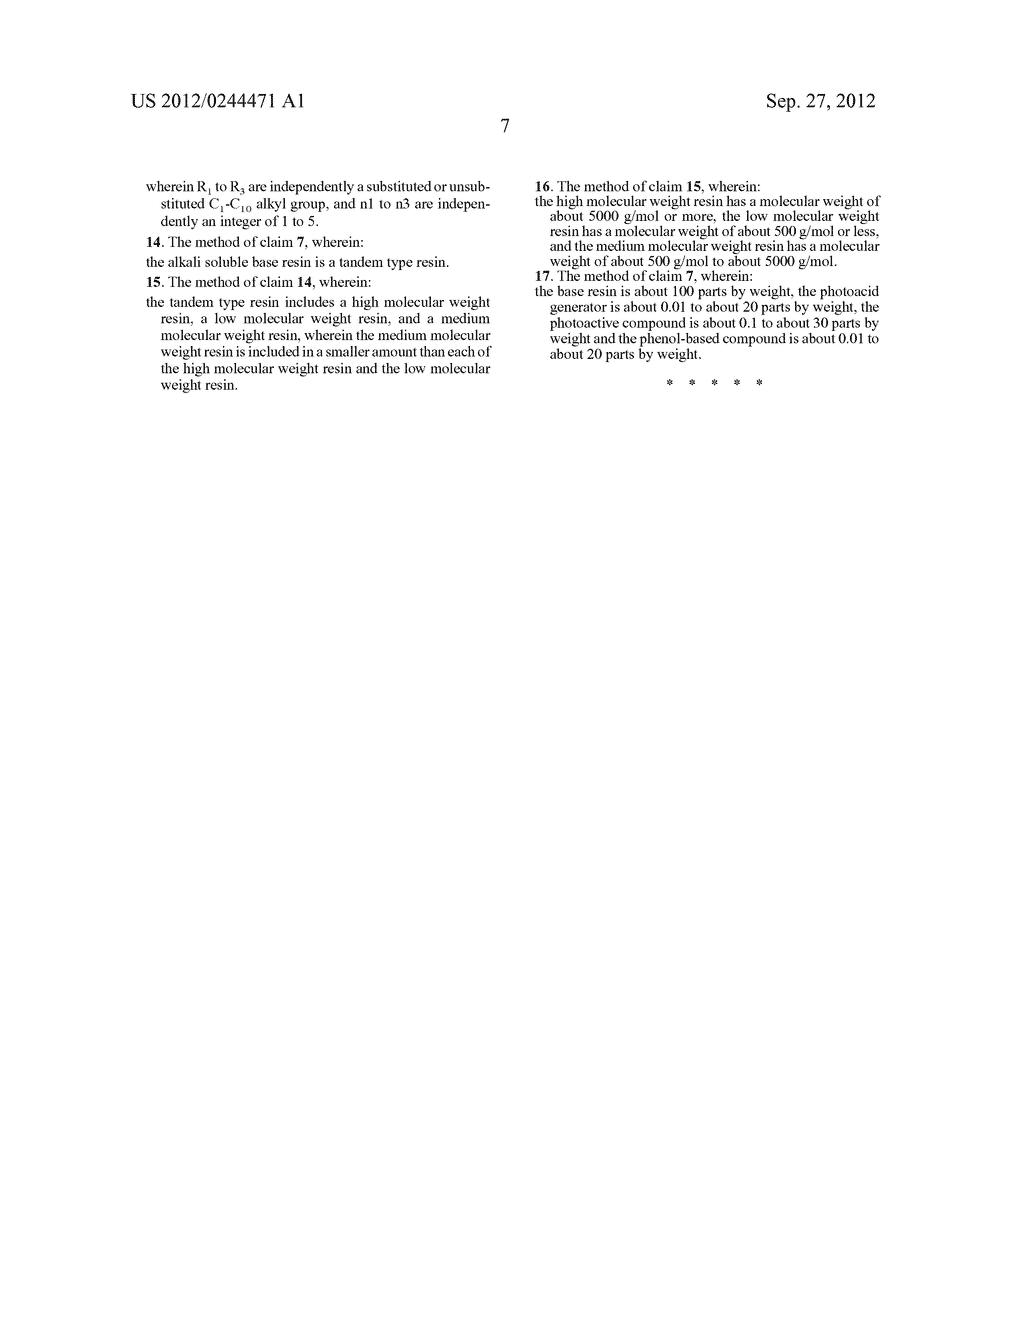 PHOTORESIST RESIN COMPOSITION AND METHOD OF FORMING PATTERNS BY USING THE     SAME - diagram, schematic, and image 17